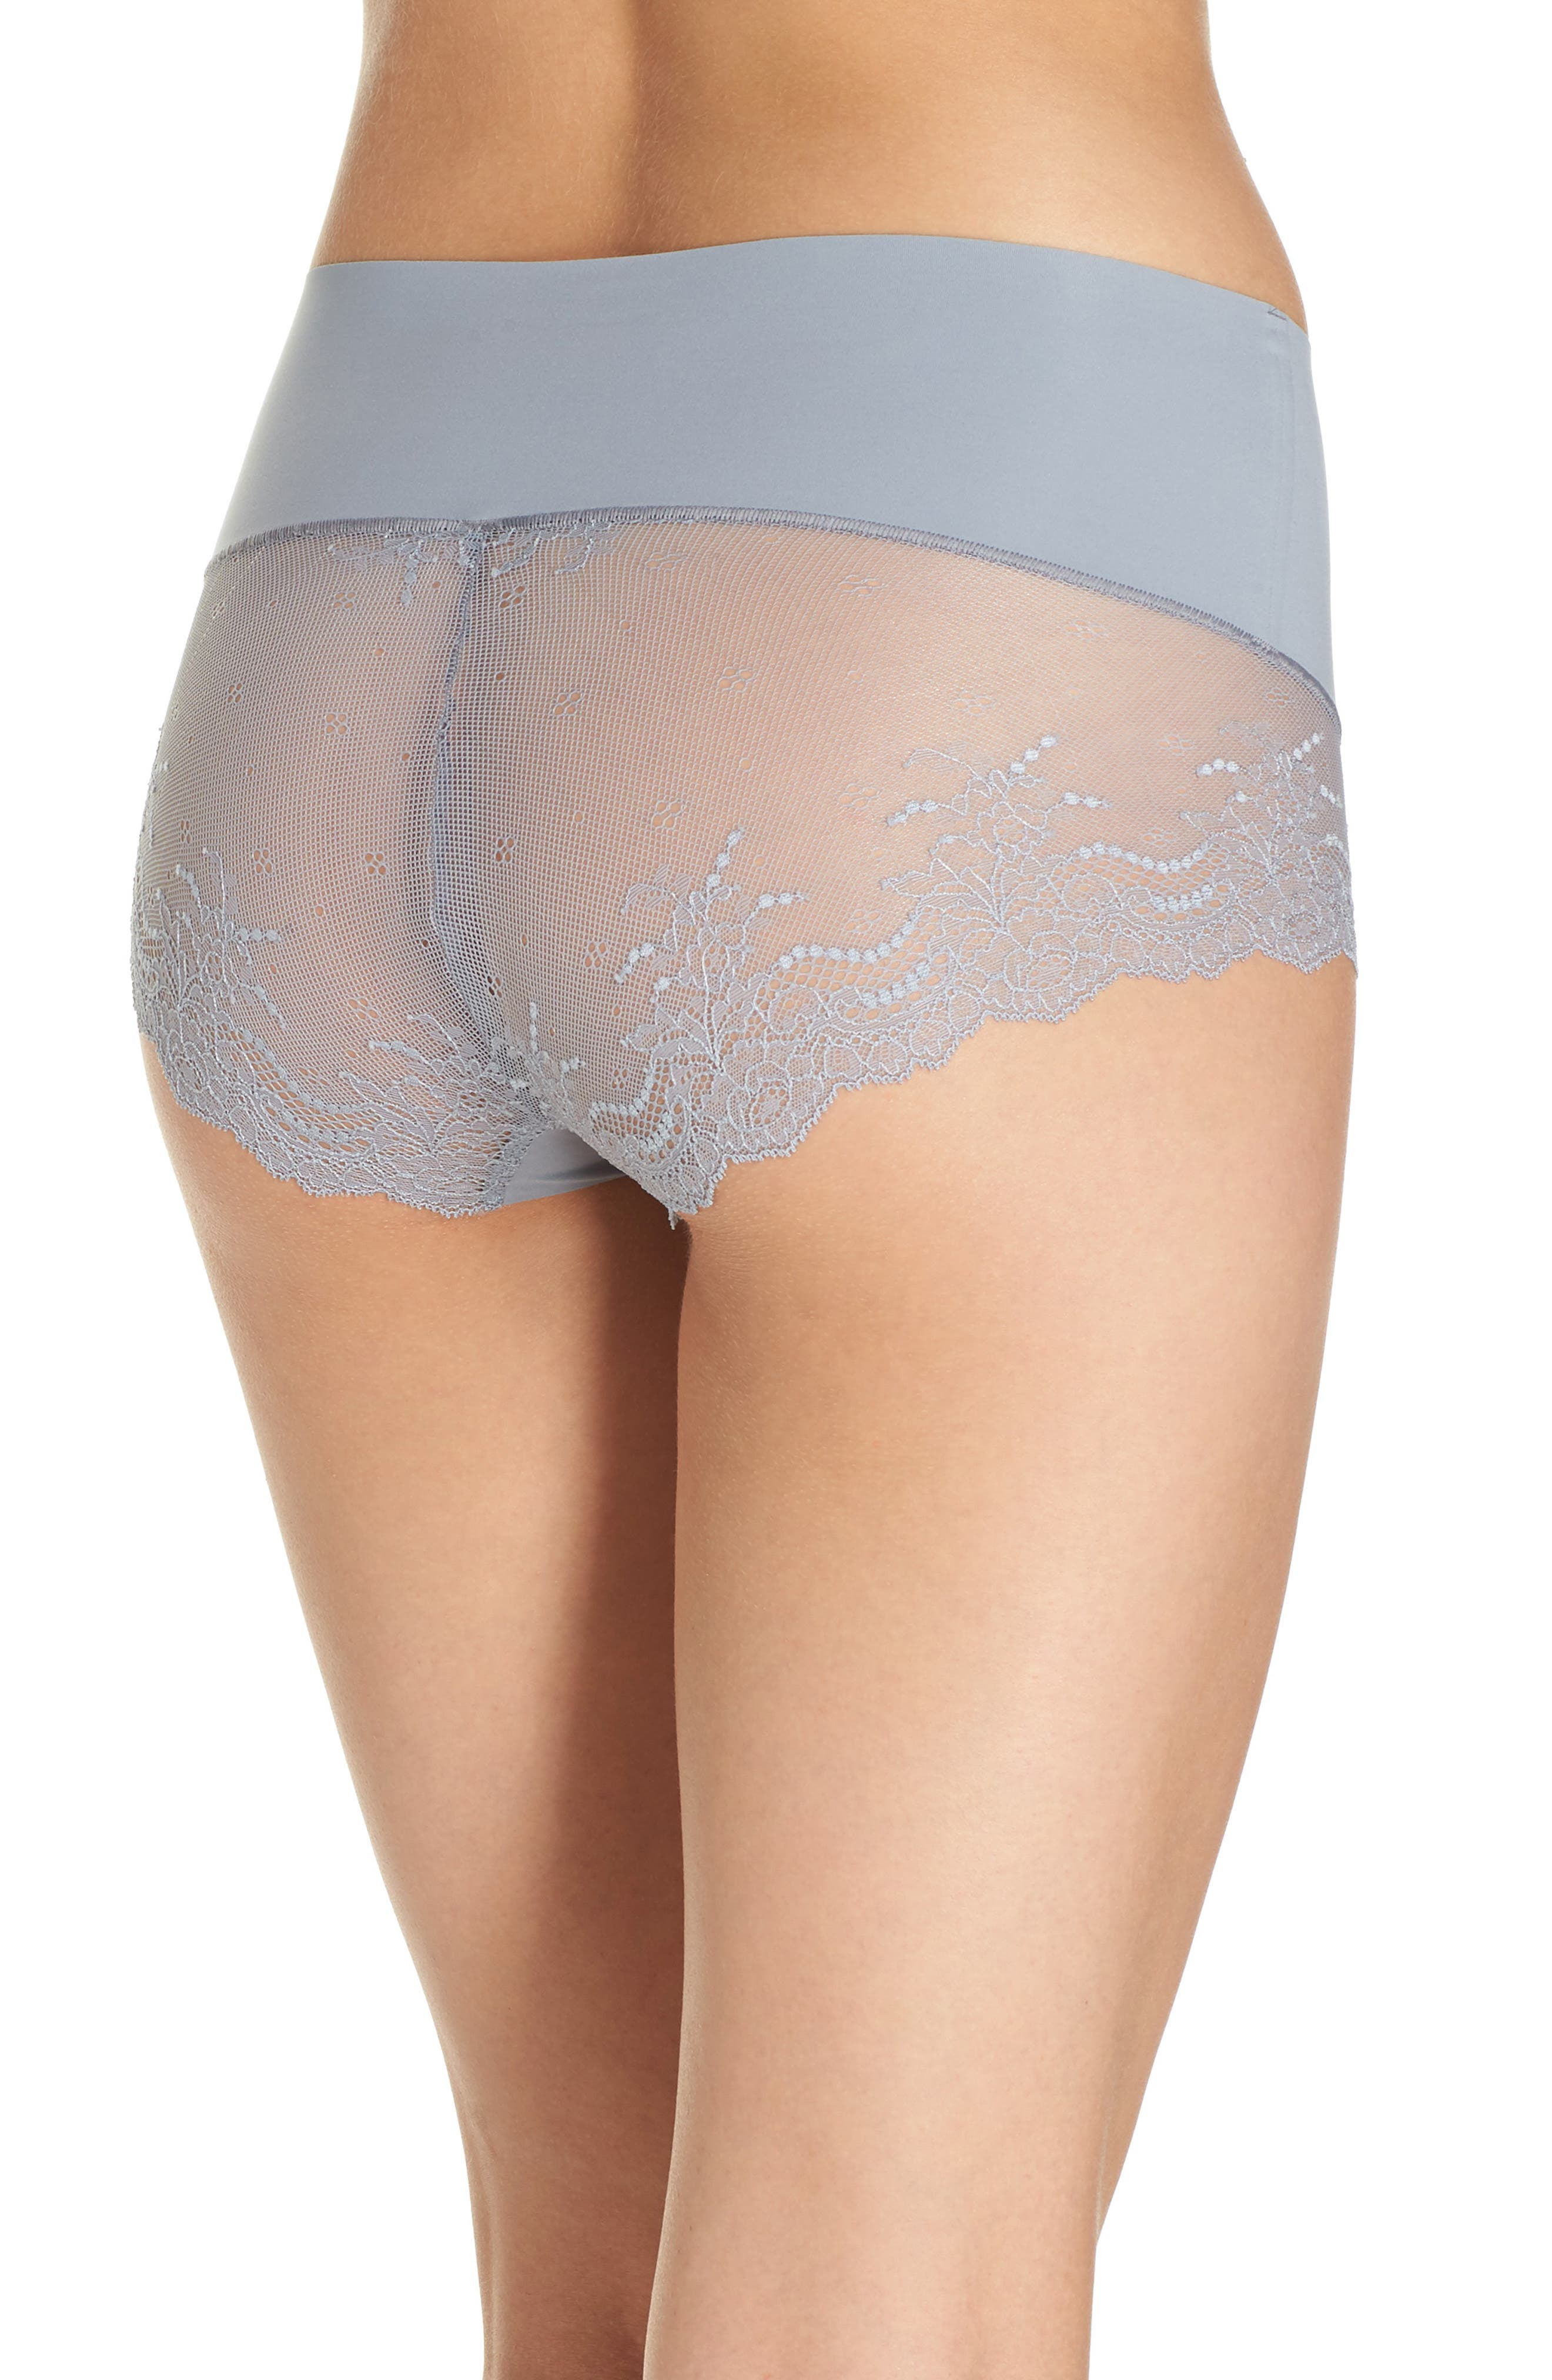 Undie-tectable Lace Hipster Panties,                             Alternate thumbnail 2, color,                             FOG GREY